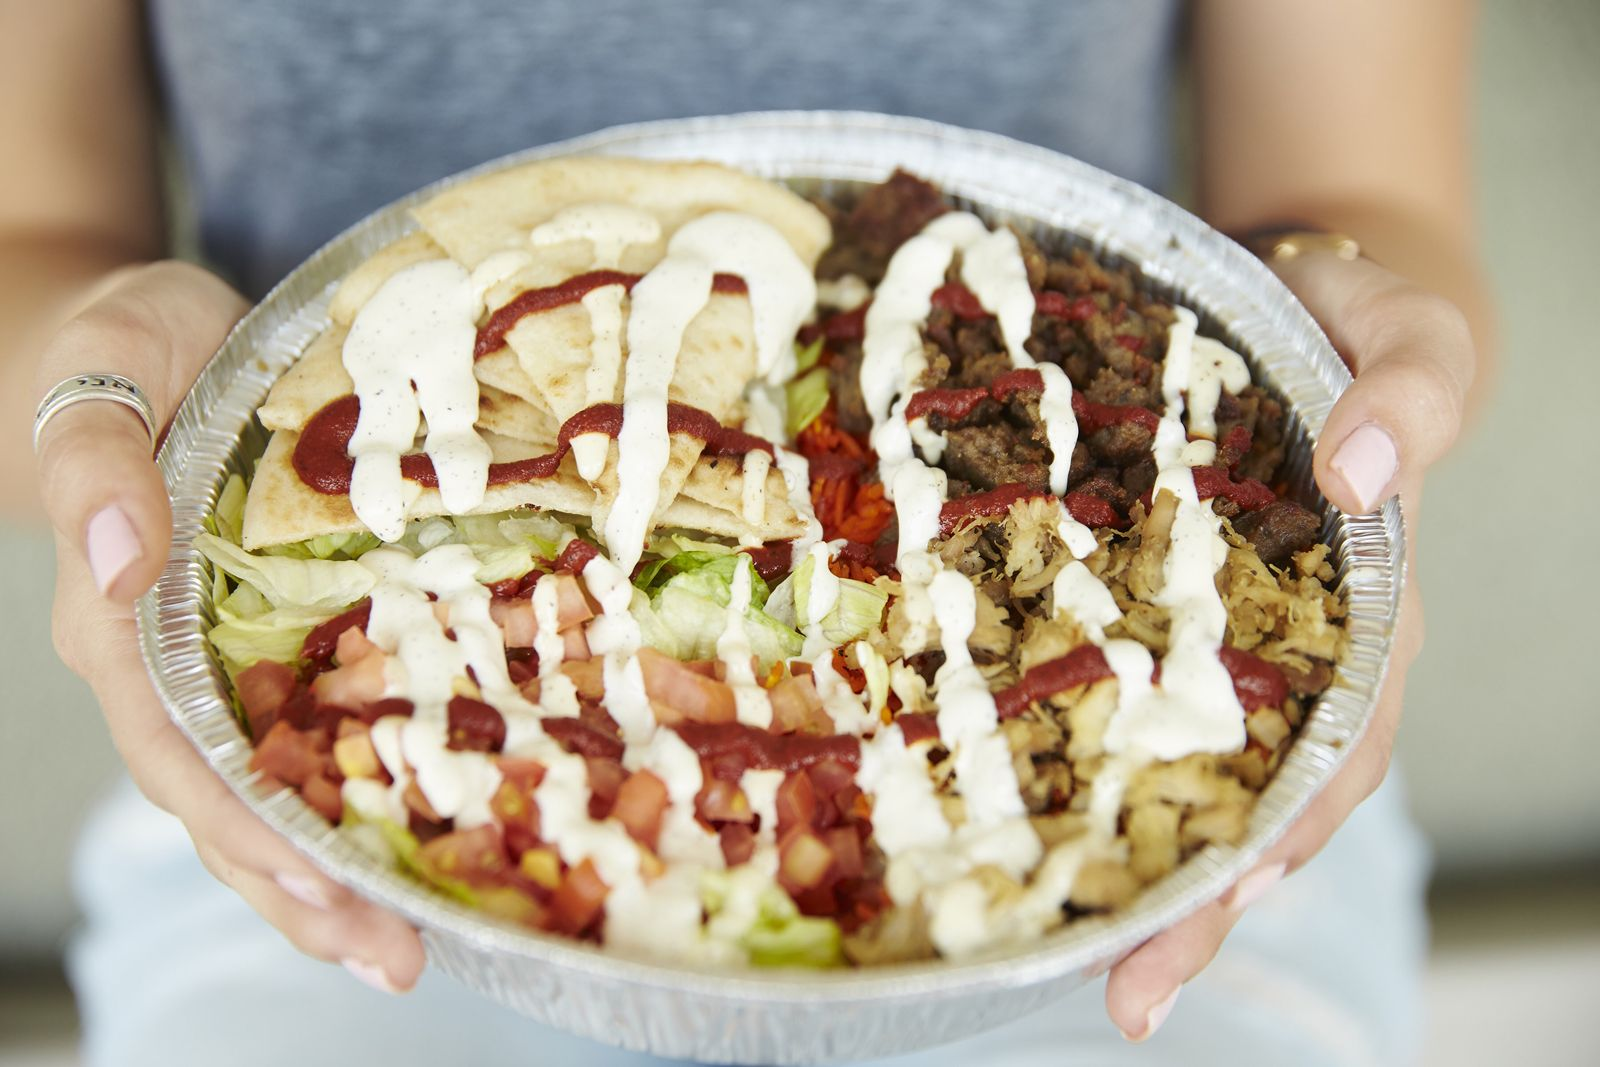 The Halal Guys, New York City's famous food cart, continues to expand its Arizona footprint by opening its first West Valley location in Avondale.